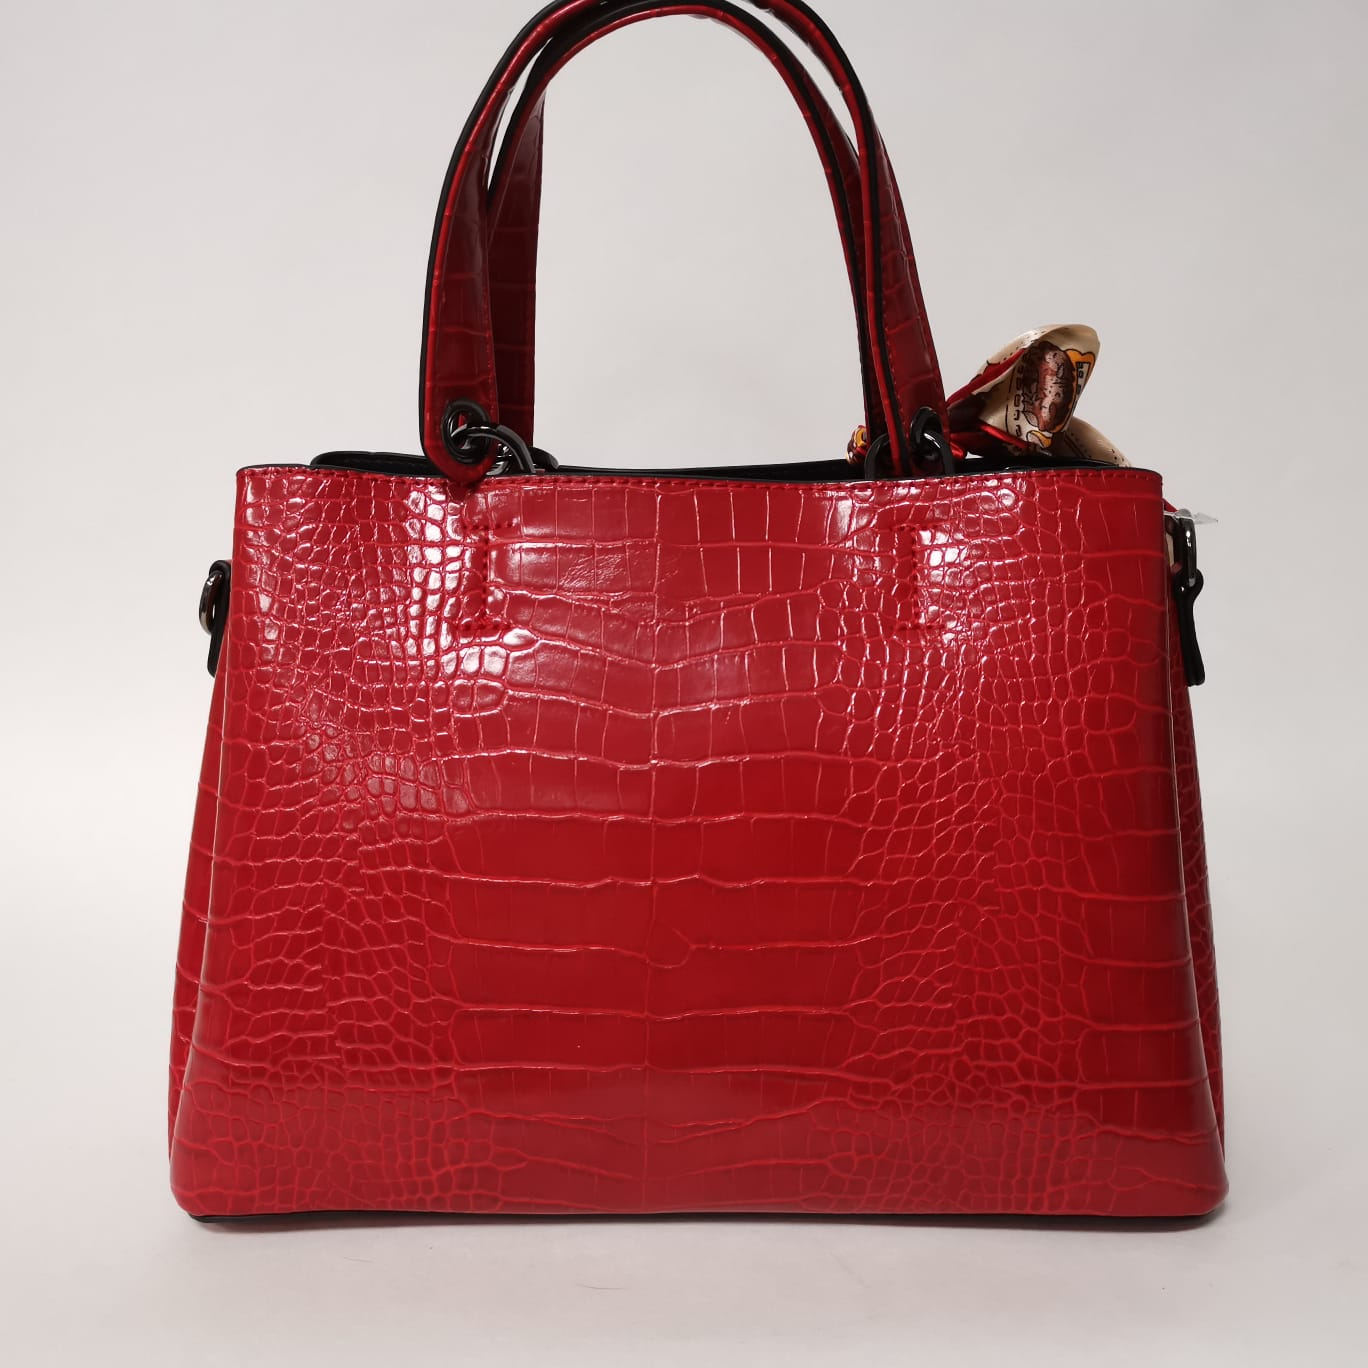 Amy Croc Handbag Red